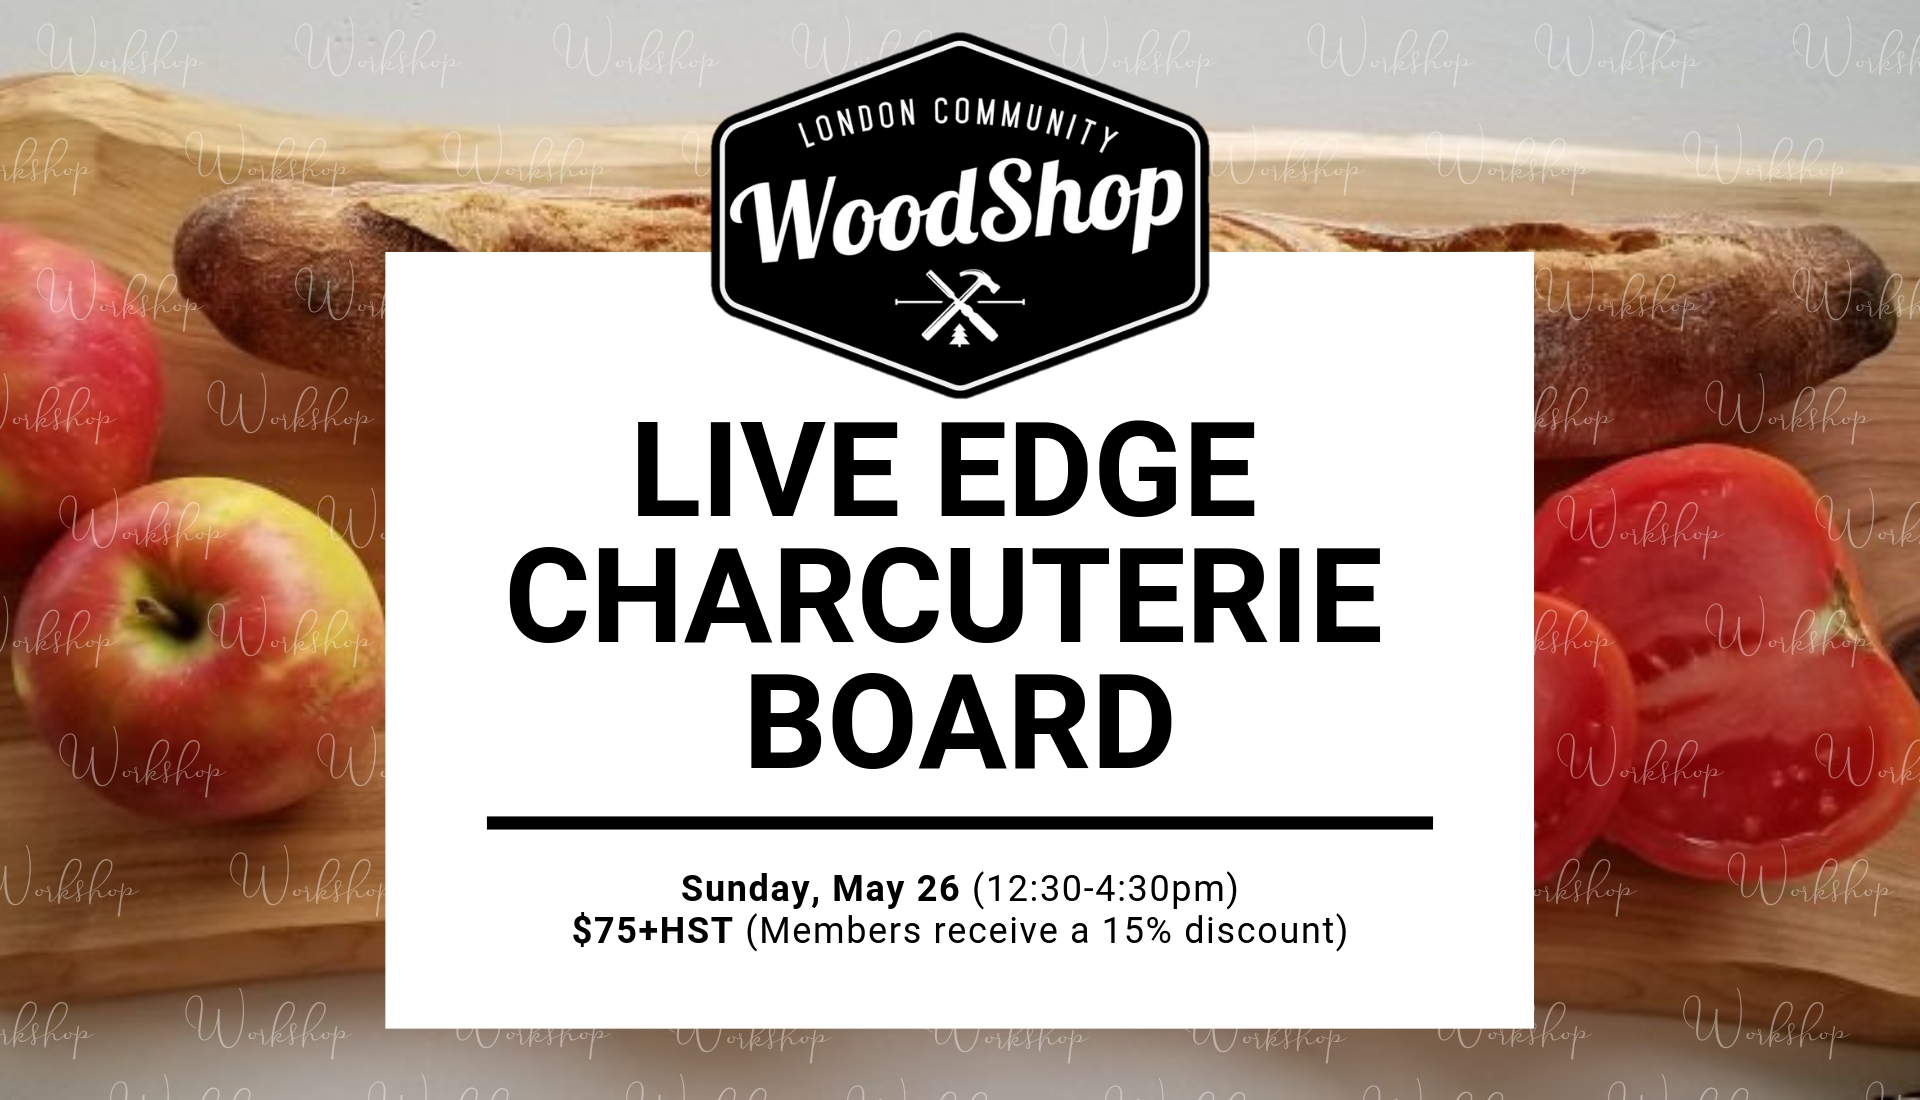 Charcuterie Board Workshop - May 26 2019